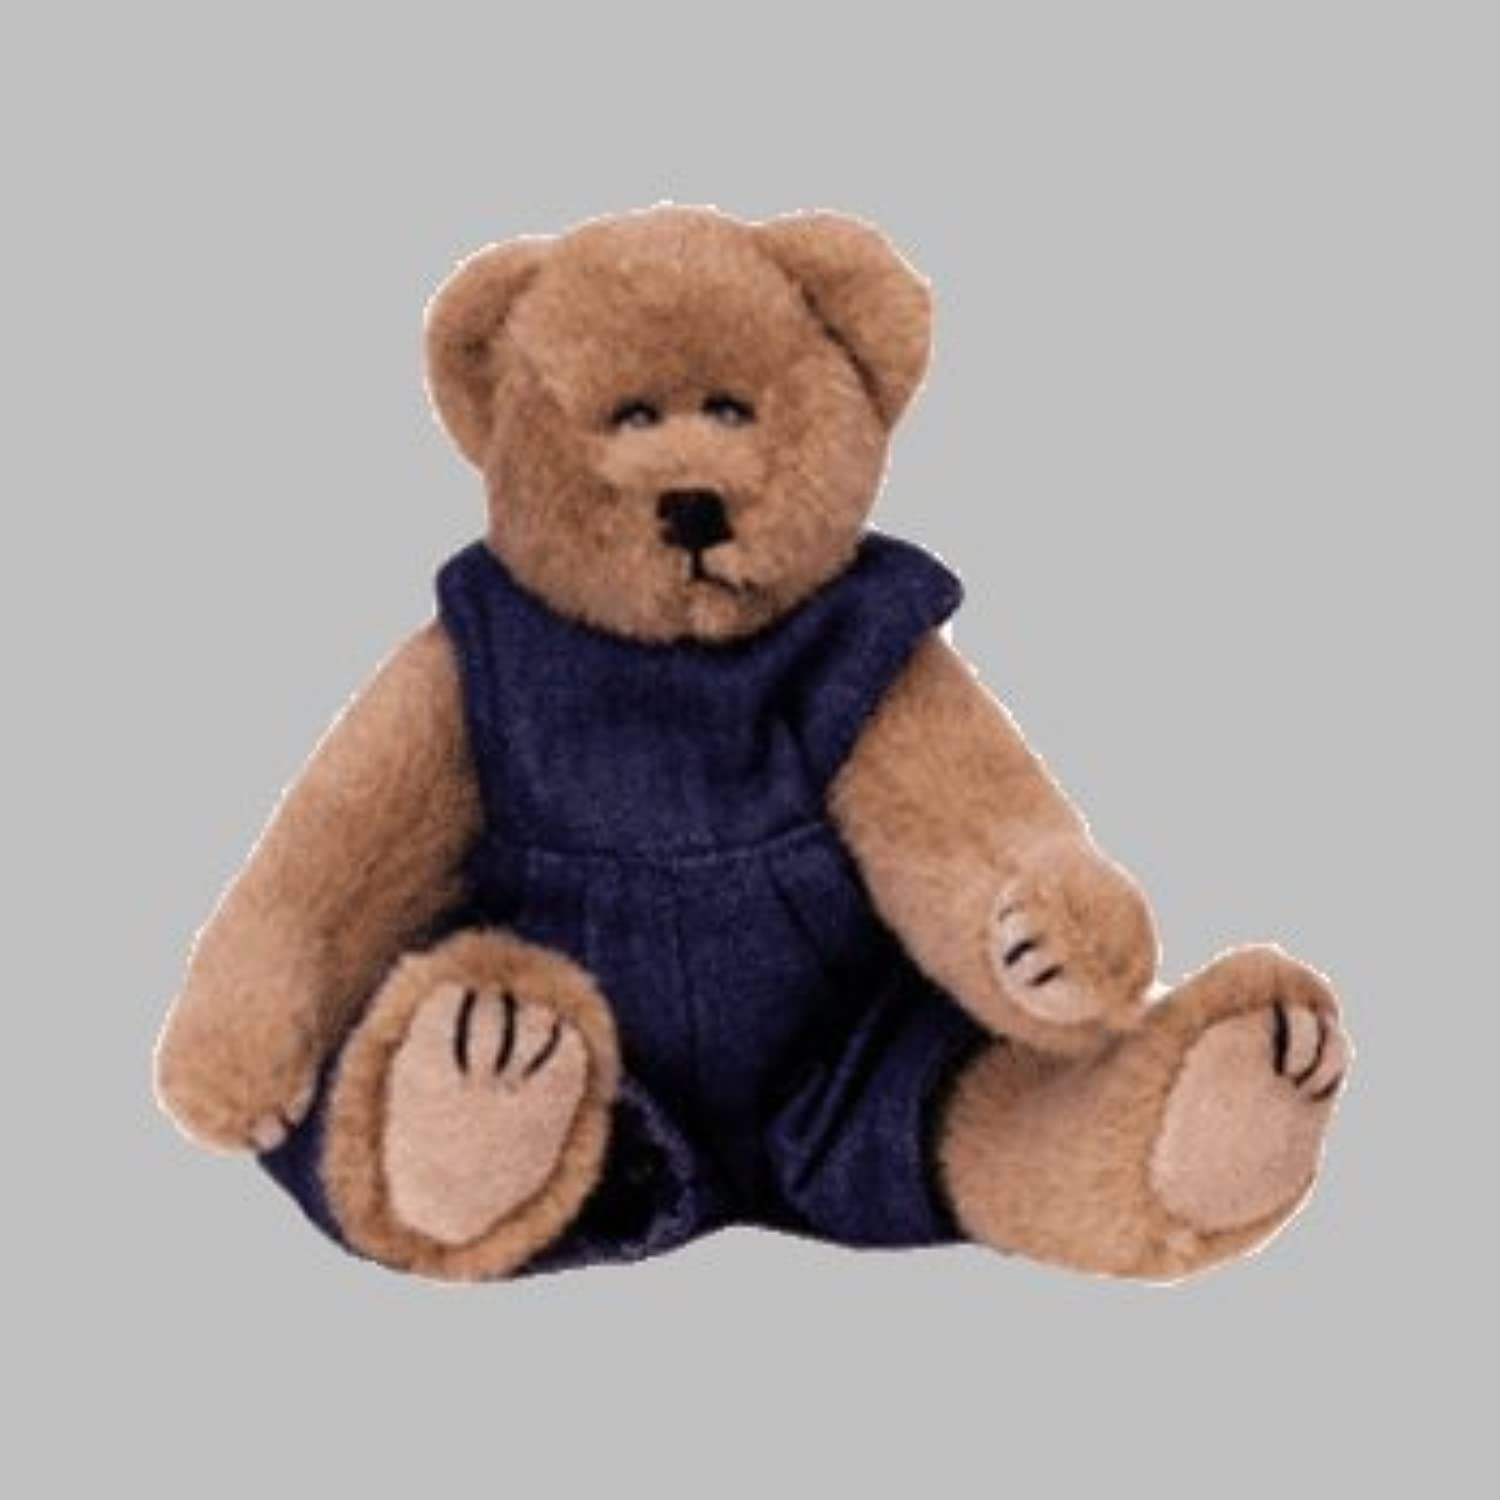 TY Attic Treasure - GILBERT the Bear [Toy] B001DQVS92 Ideales Geschenk für alle Gelegenheiten    | Internationale Wahl